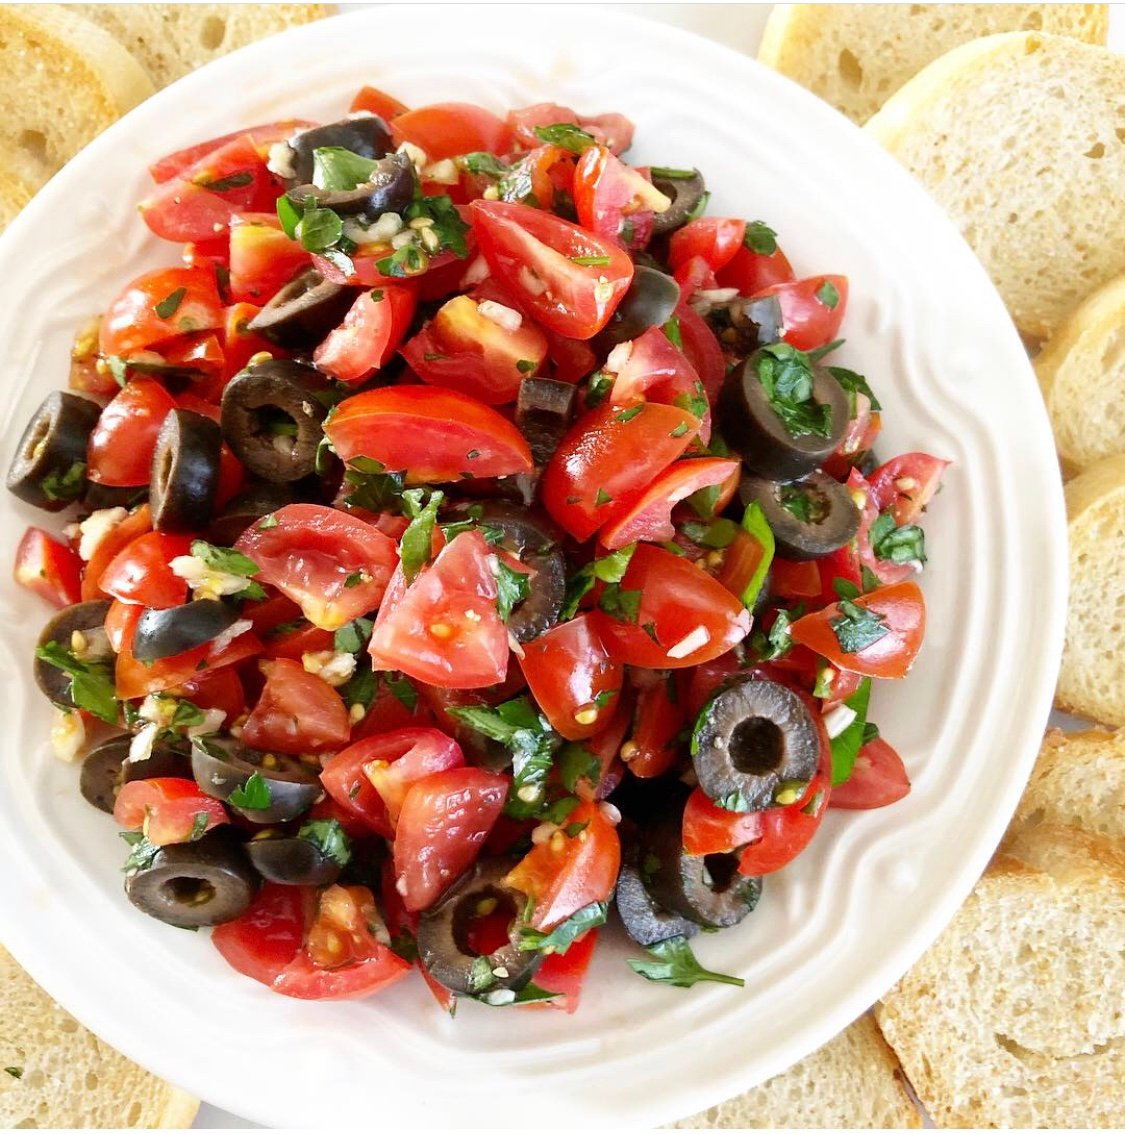 Tomato and Black Olive Bruschetta